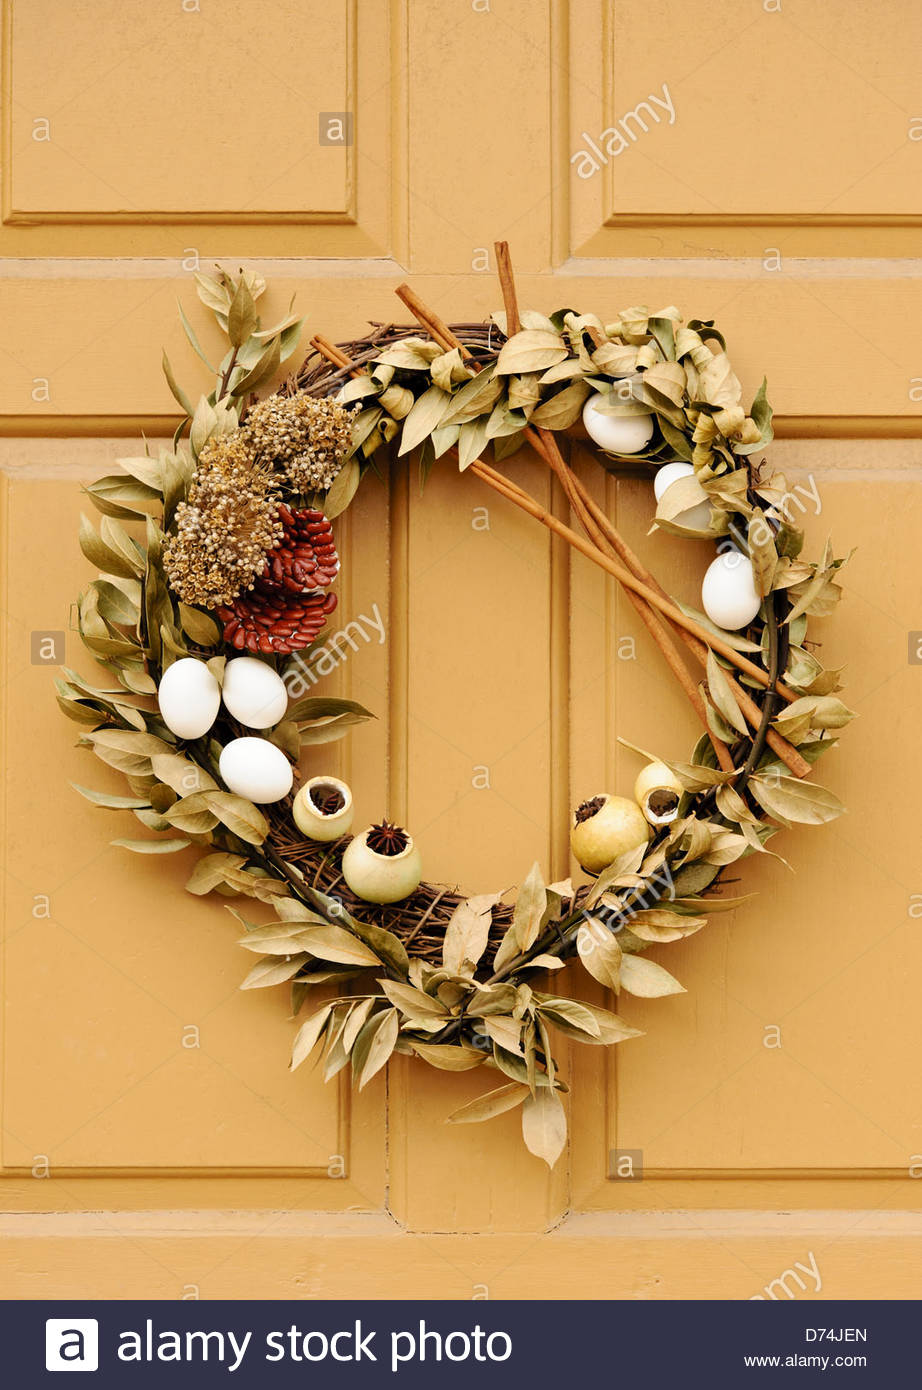 Magnificent Decorative Wreaths For Walls Collection - Wall Art ...